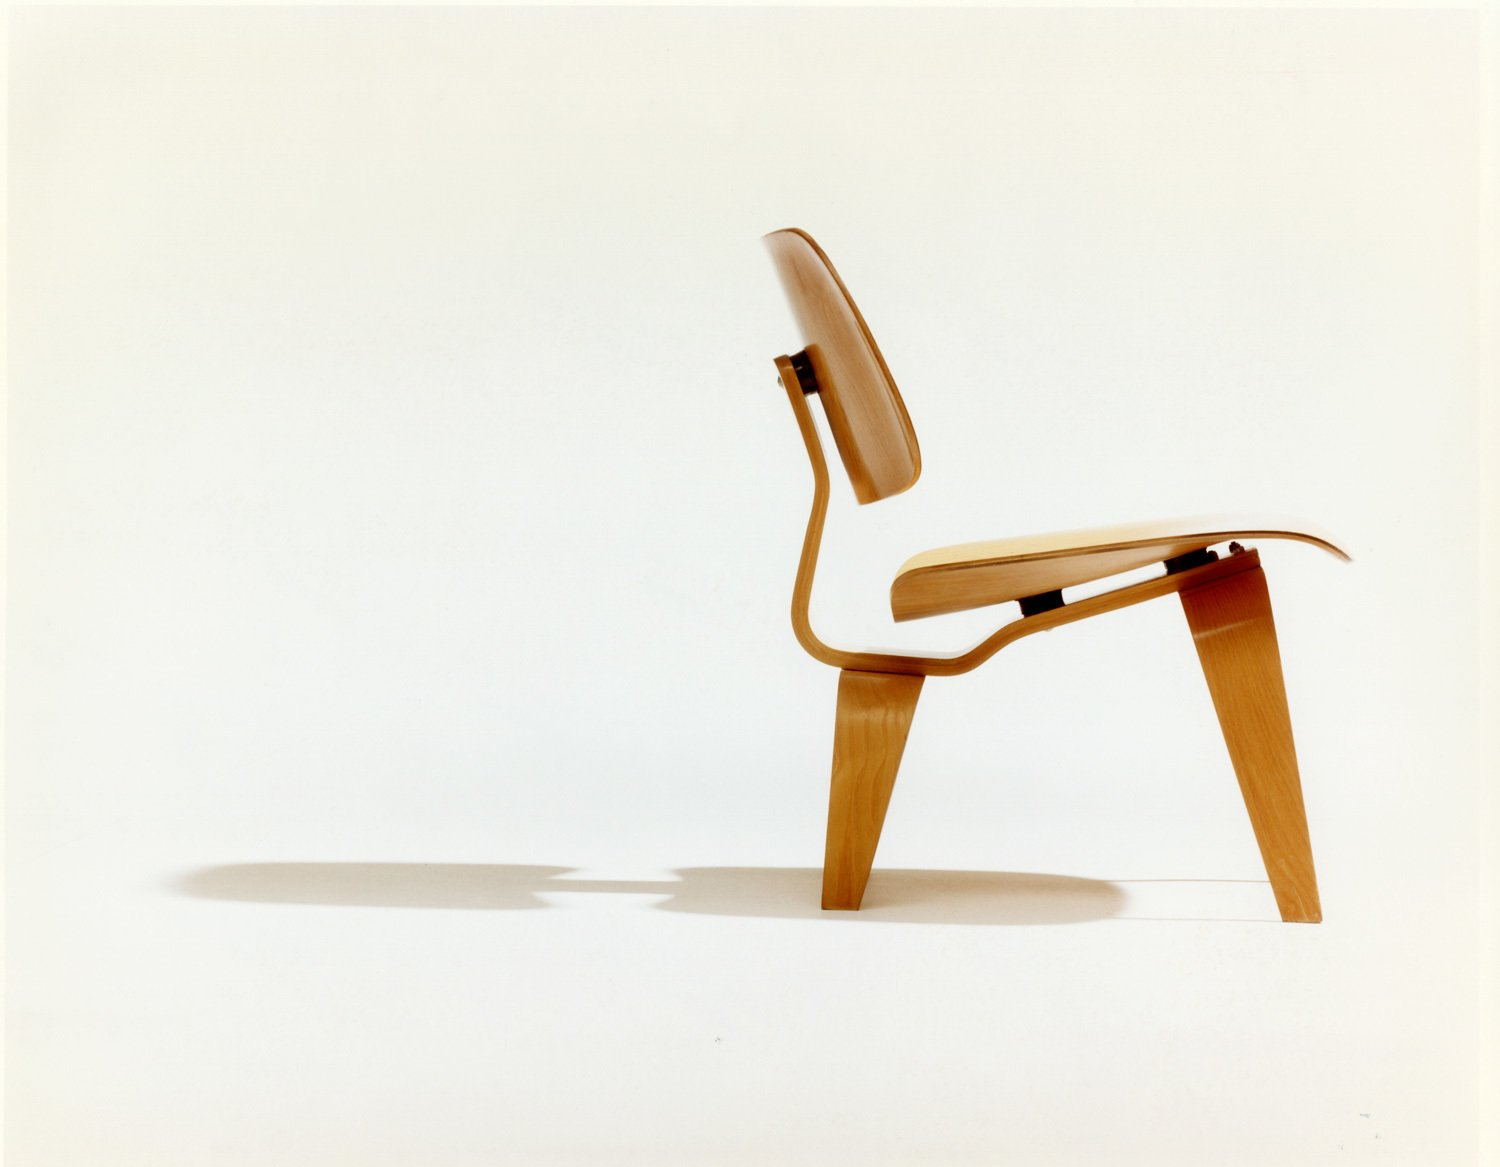 A photograph by Phil Schaafsma highlights the ergonomic design of the chair.  Photo 1 of 1 in Poll: Why Buy Real vs. Fake Furniture? from A Leg Splint Inspired Charles and Ray Eames' Famous Molded Plywood Lounge Chair